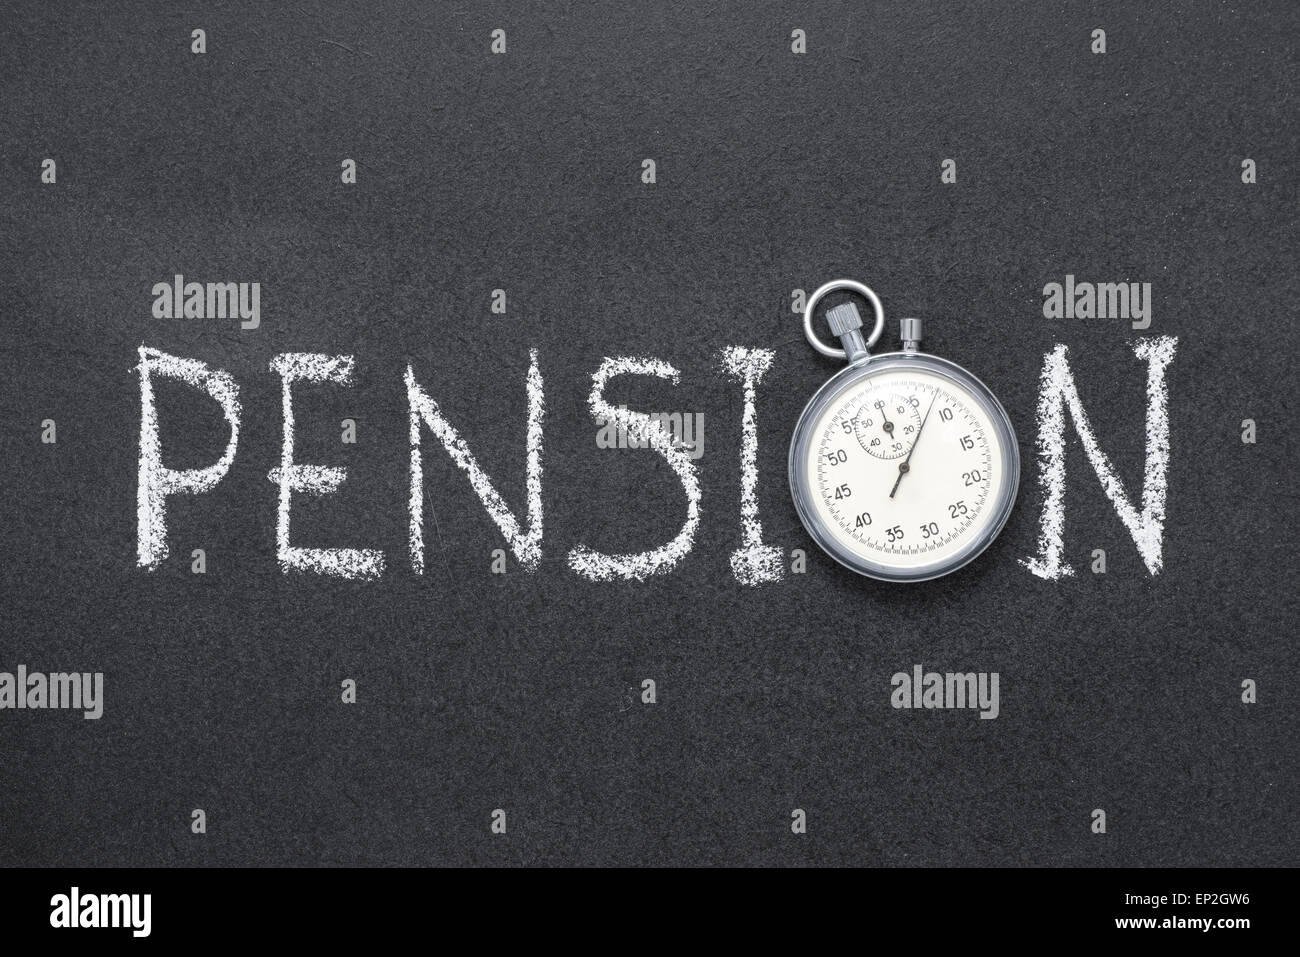 pension word handwritten on chalkboard with vintage precise stopwatch used instead of O - Stock Image